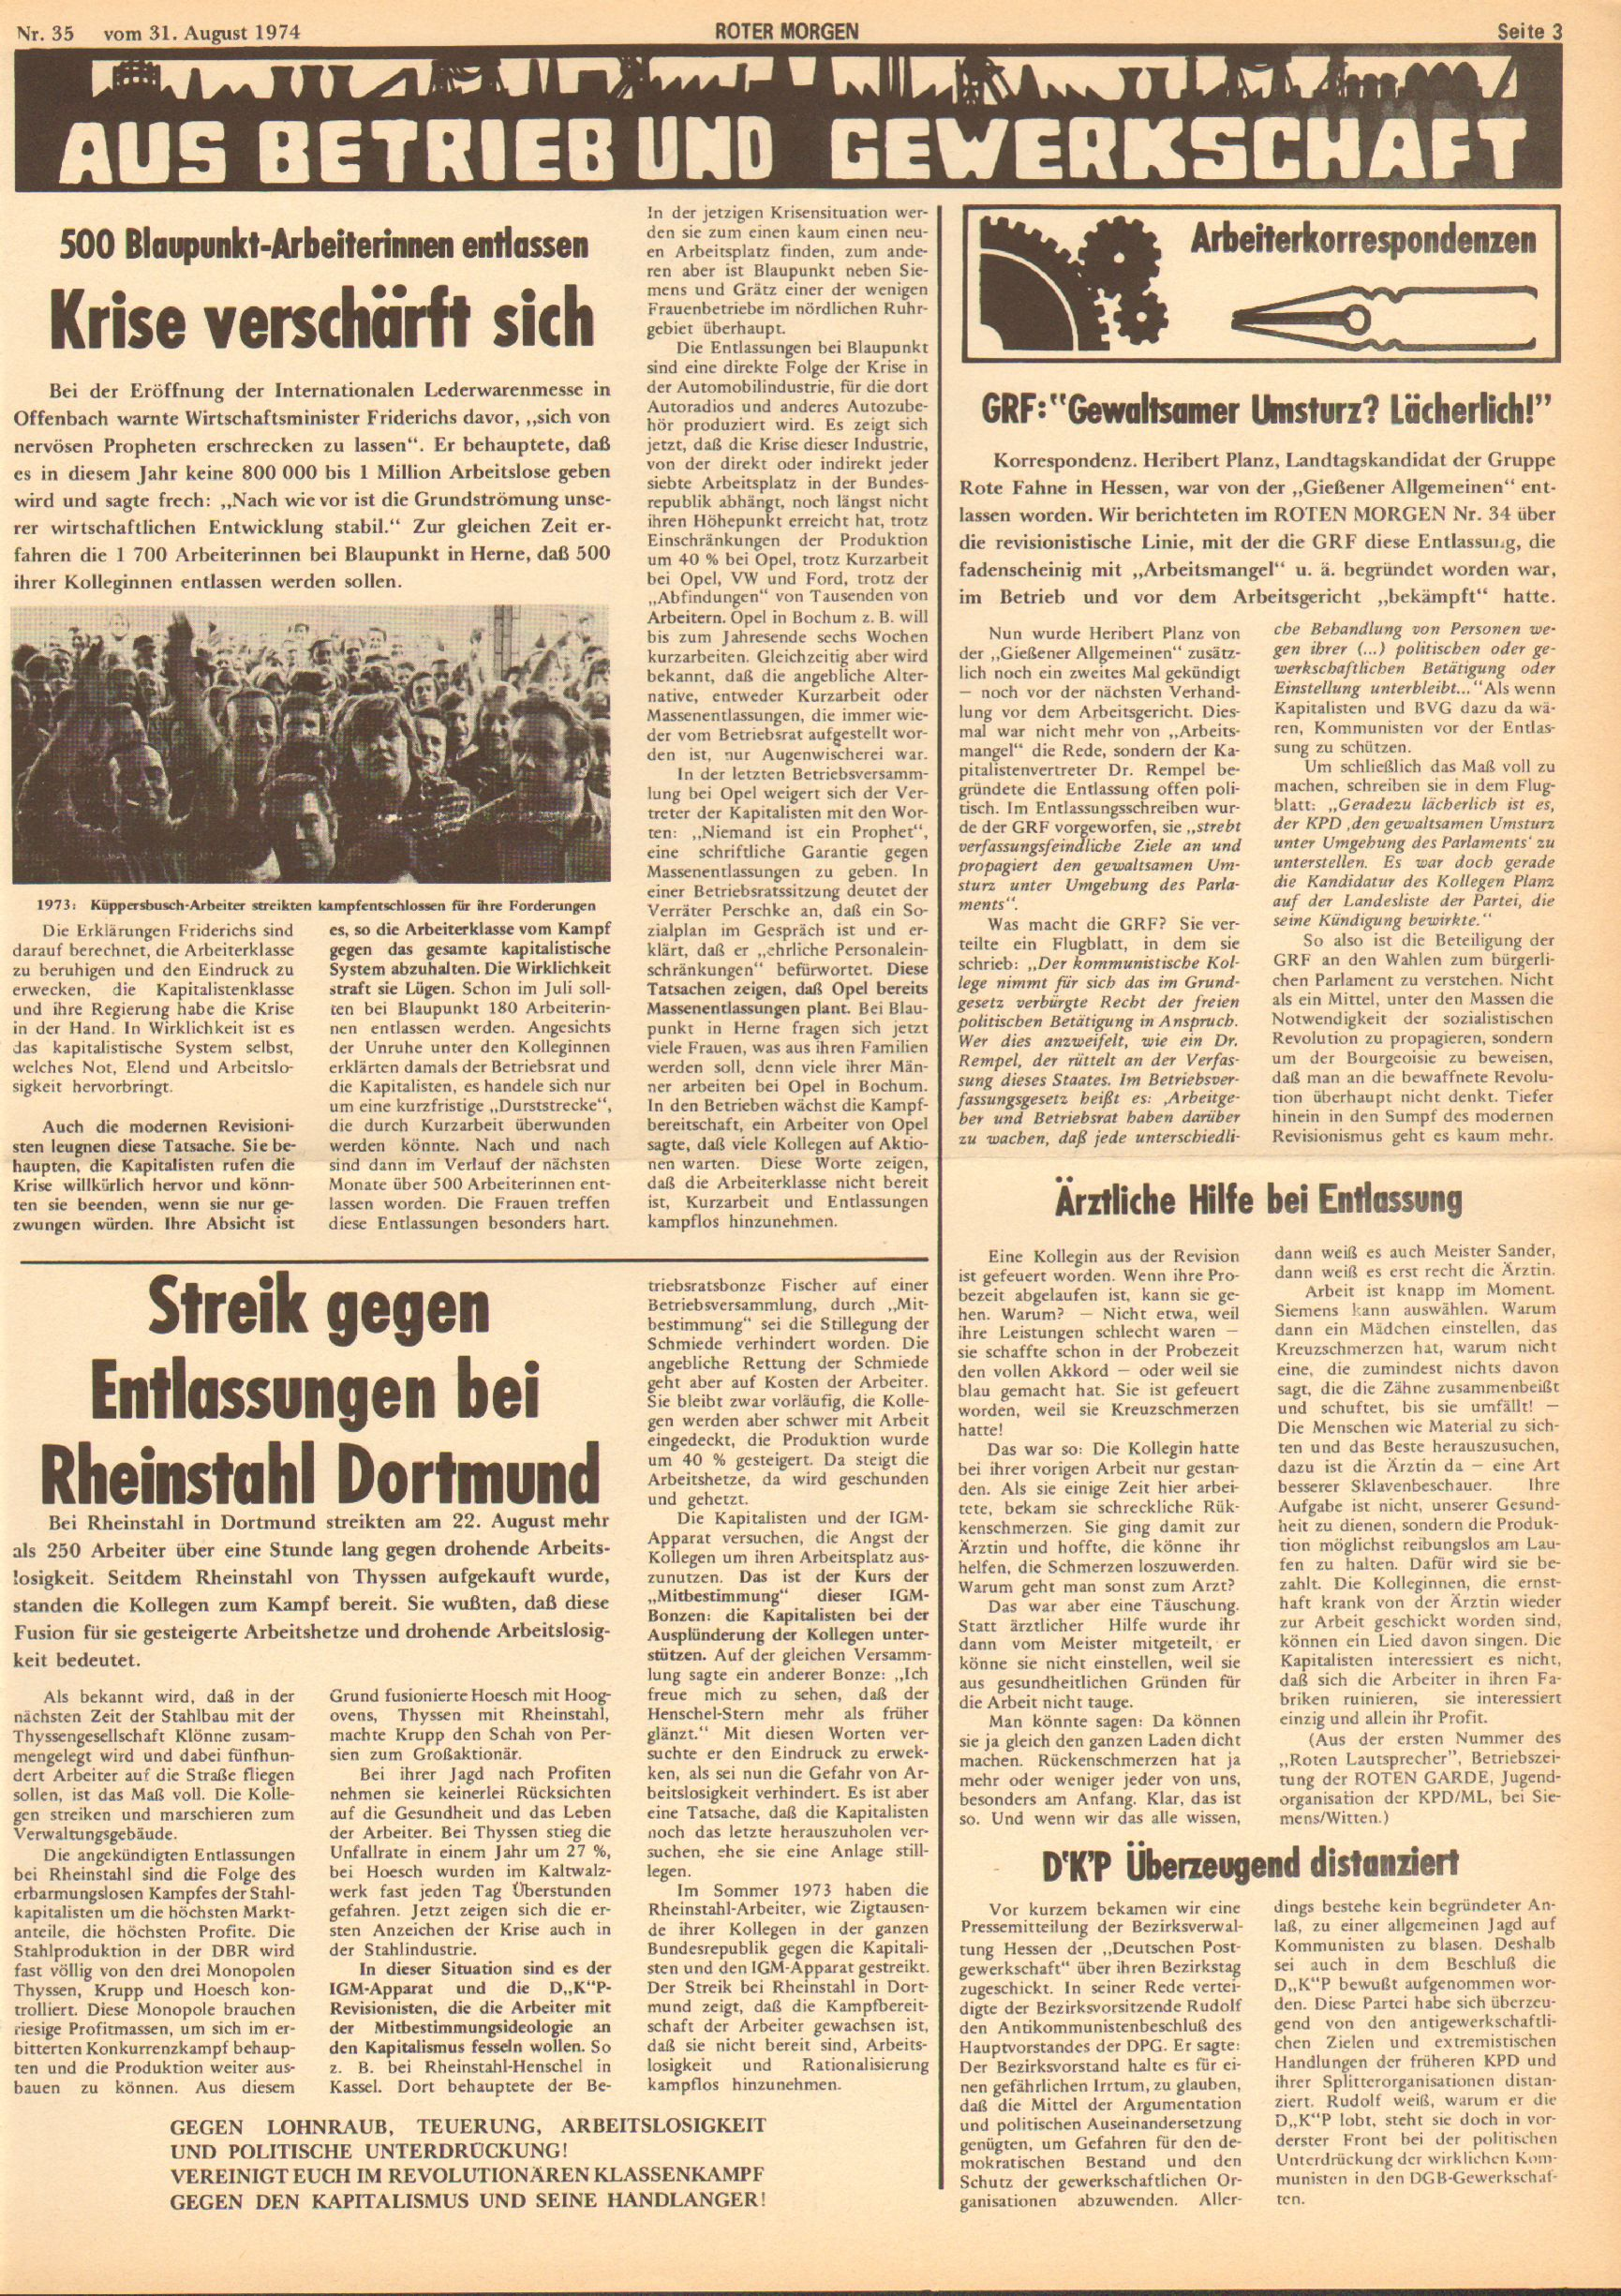 Roter Morgen, 8. Jg., 31. August 1974, Nr. 35, Seite 3